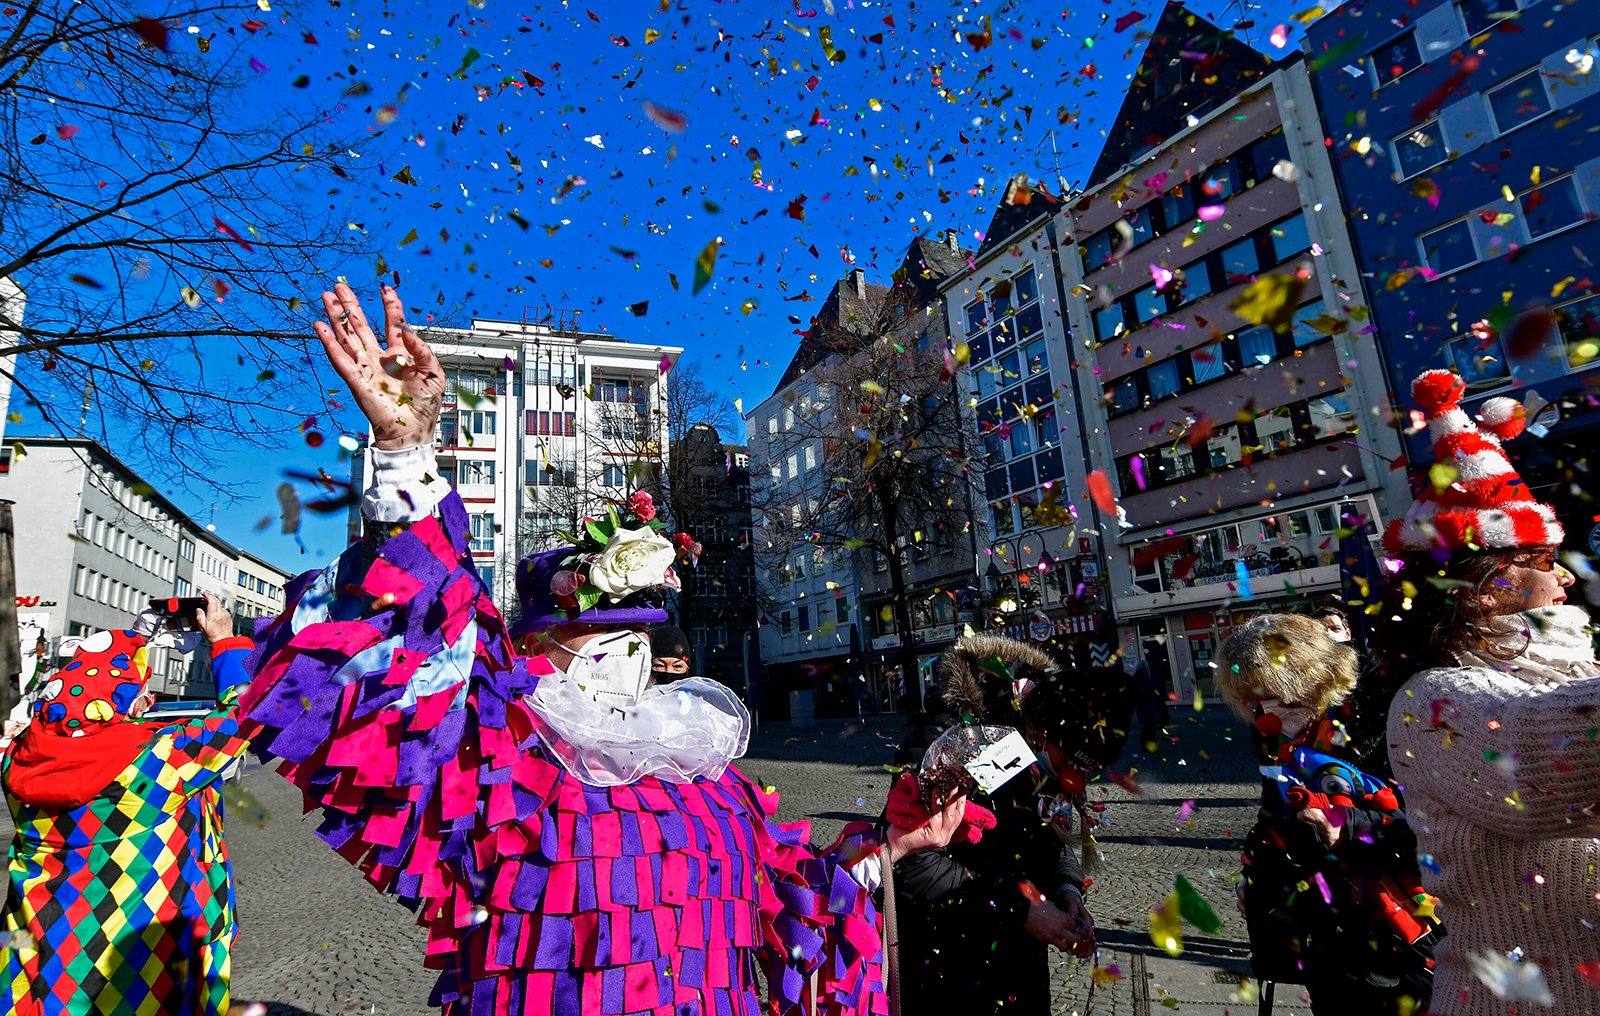 """Just a few people in costumes come together at the """"Alter Markt,"""" where normally tens of thousands of revelers dressed in carnival costumes would celebrate the start of the street carnival, in Cologne, Germany, Thursday, Feb. 11, 2021. This year all carnival celebrations are banned due to the coronavirus pandemic. (AP Photo/Martin Meissner)"""